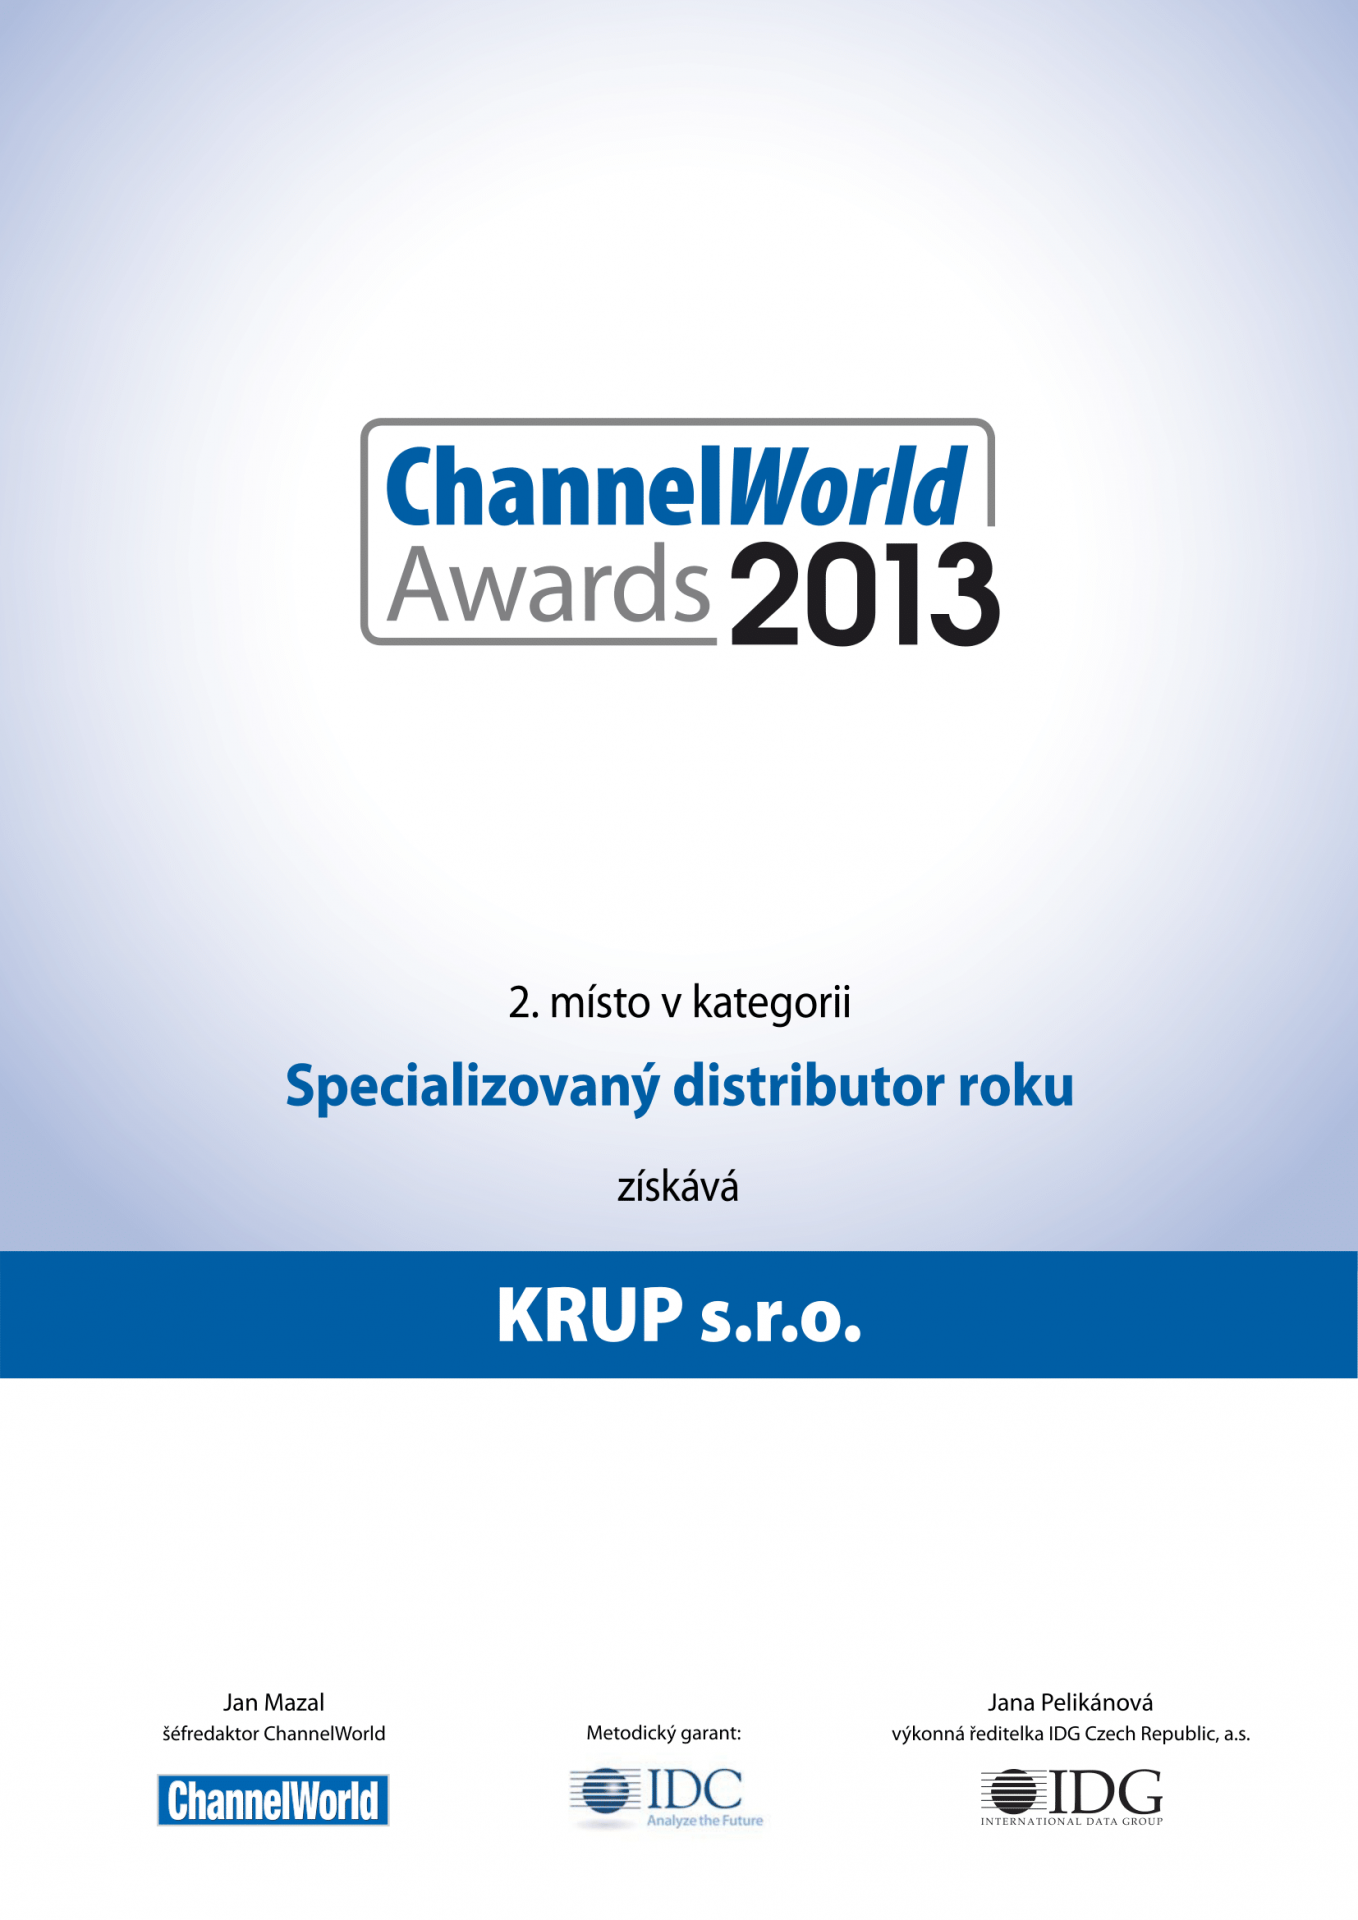 ChannelWorld 2013 second place